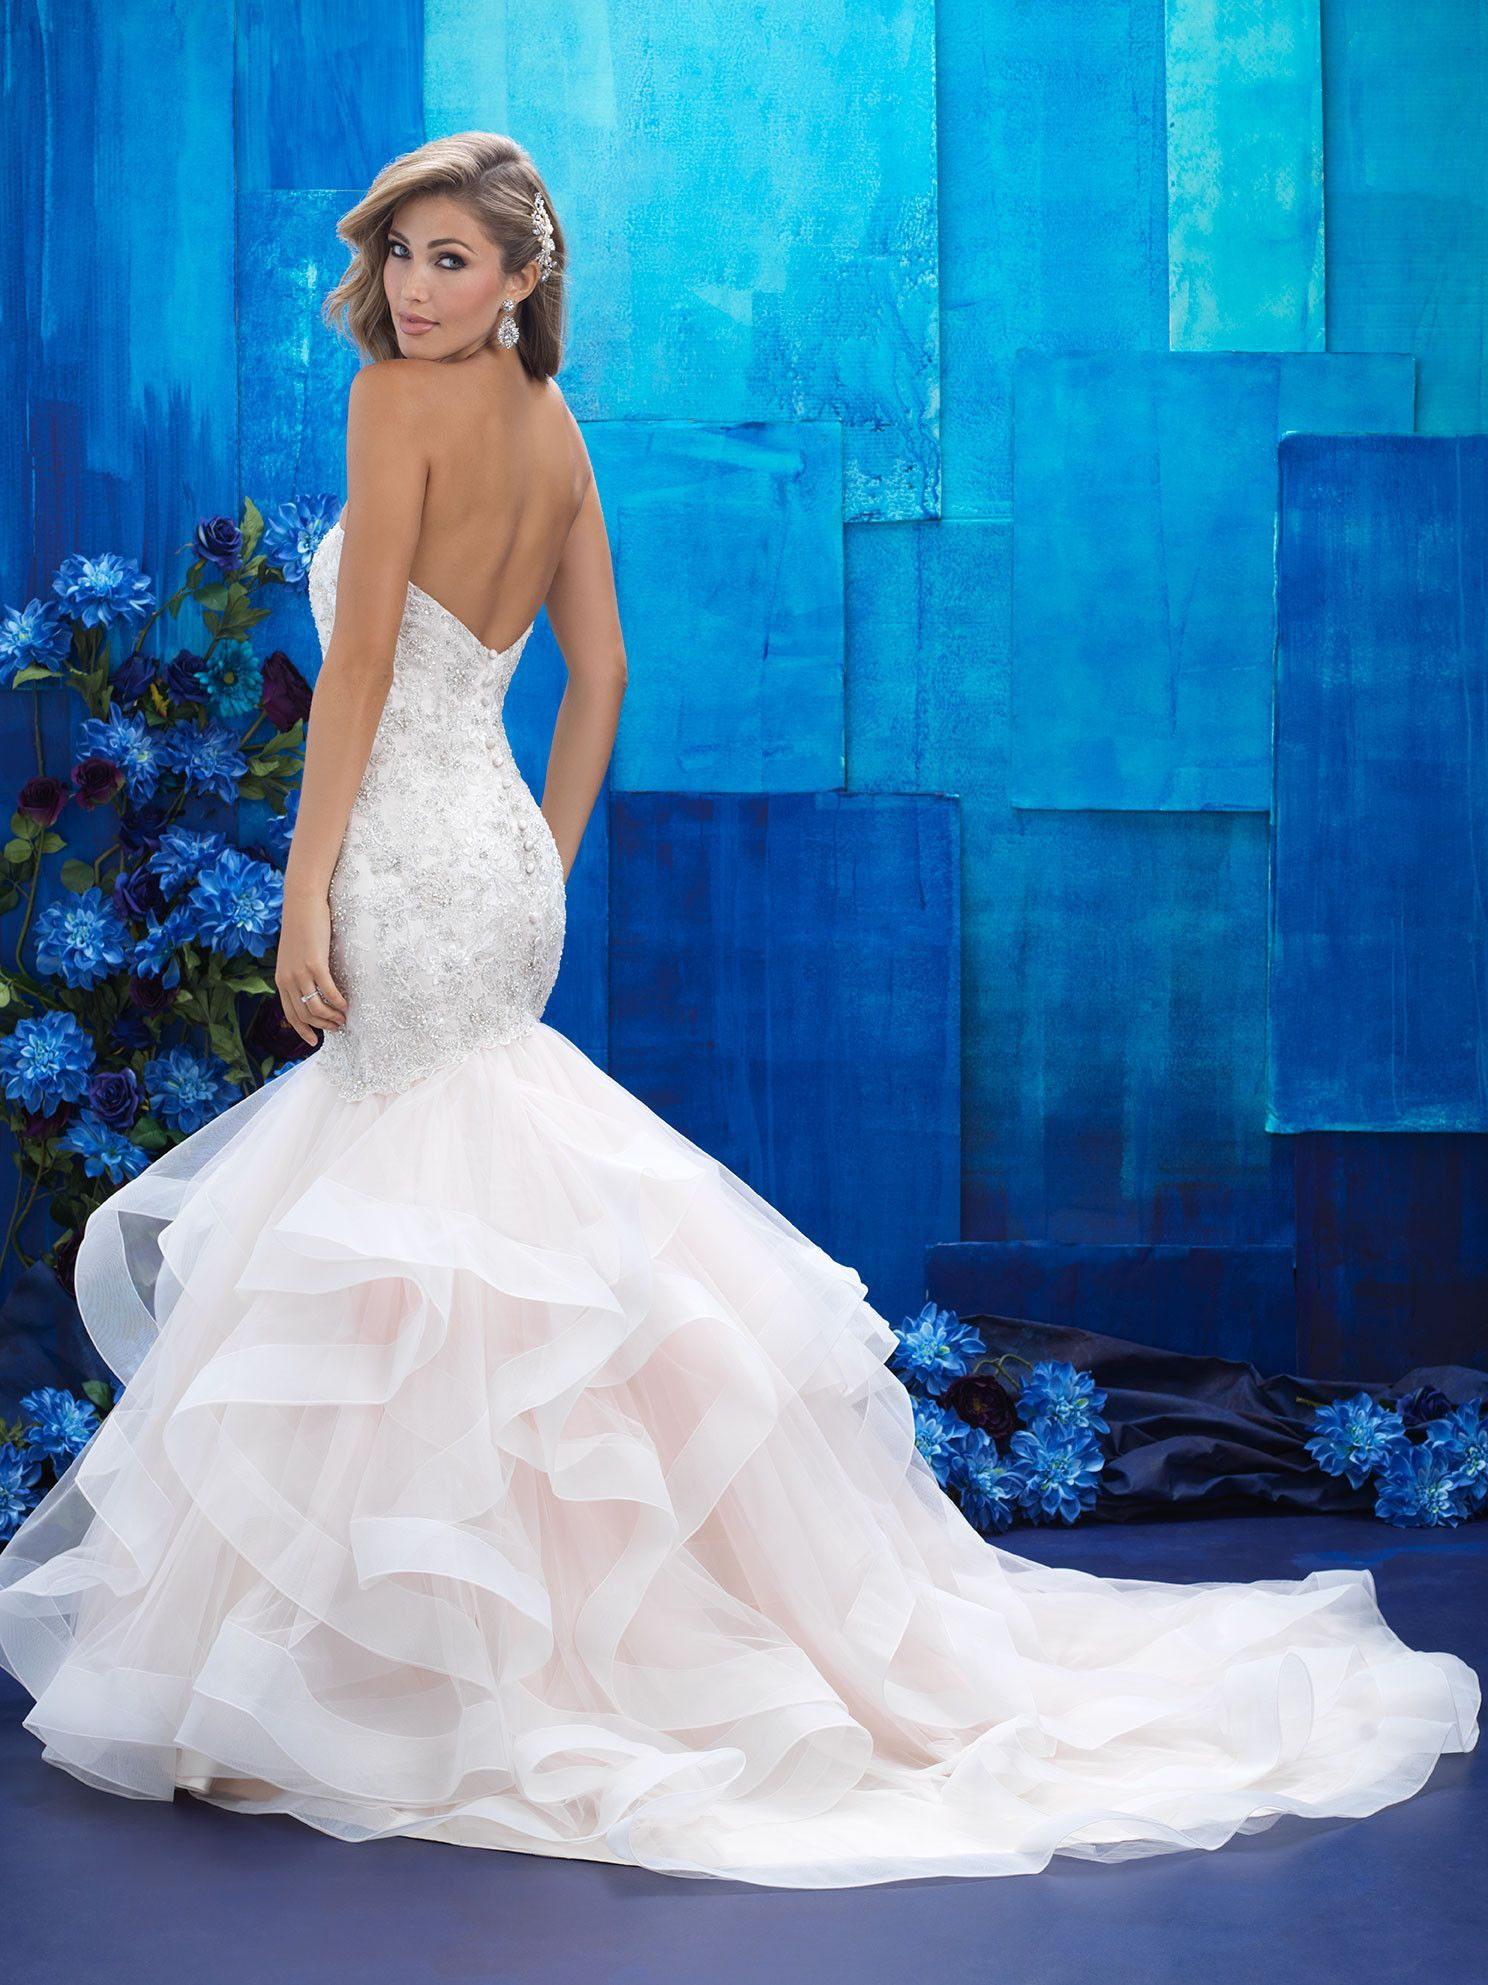 Mermaid ruffle wedding dress  Allure Bridals   Wedding DressesBridal Gowns  Pinterest